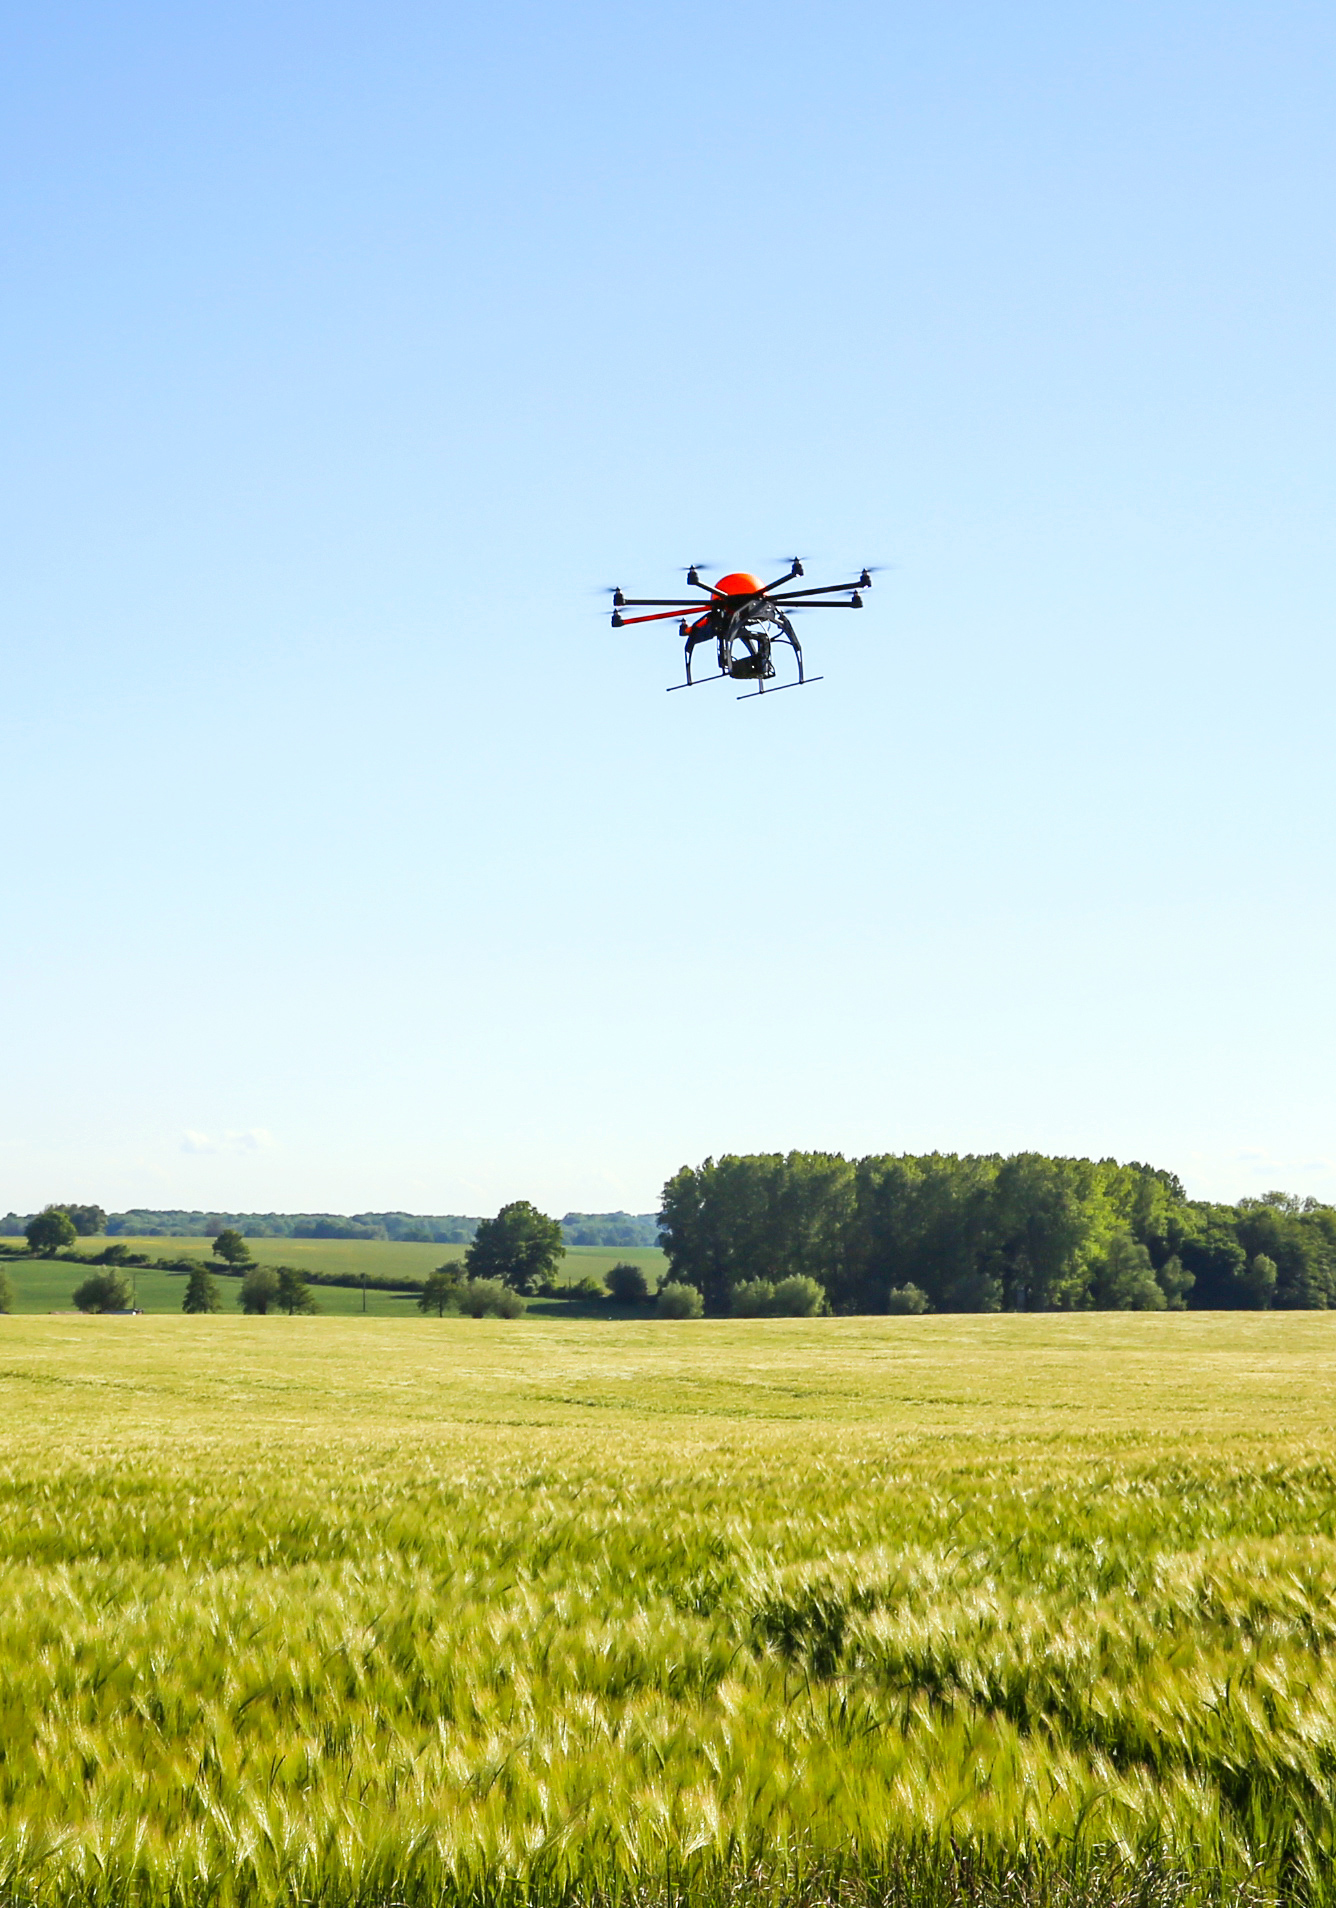 Drone flying in an open field